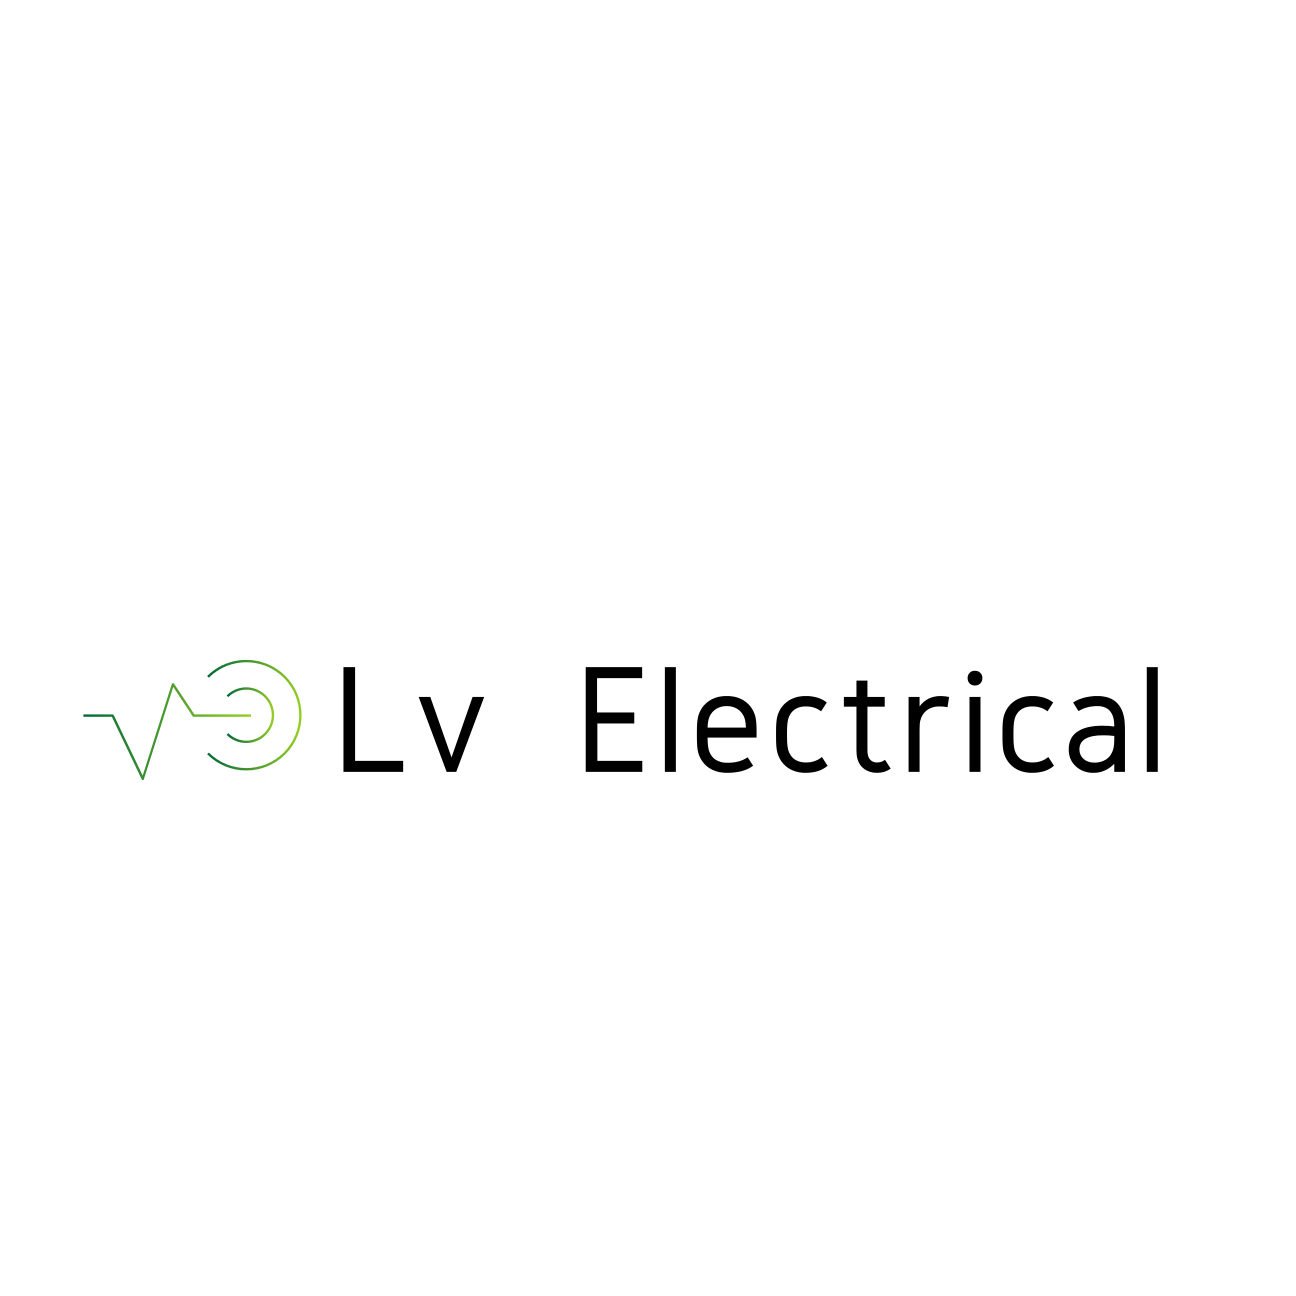 Lv-Electrical